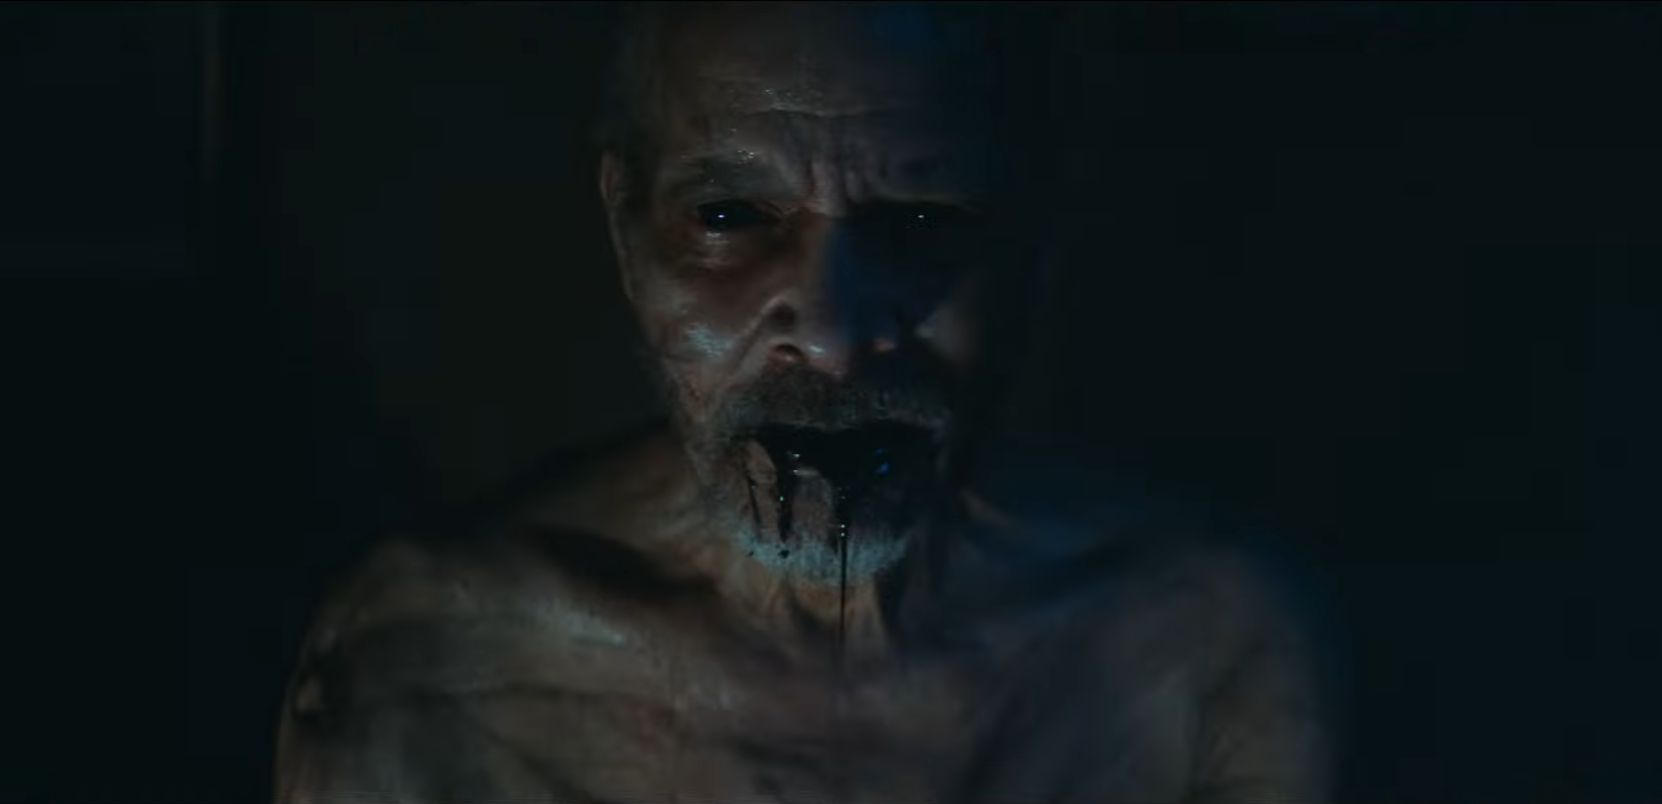 The new 'It Comes At Night' teaser is terrifying and tense